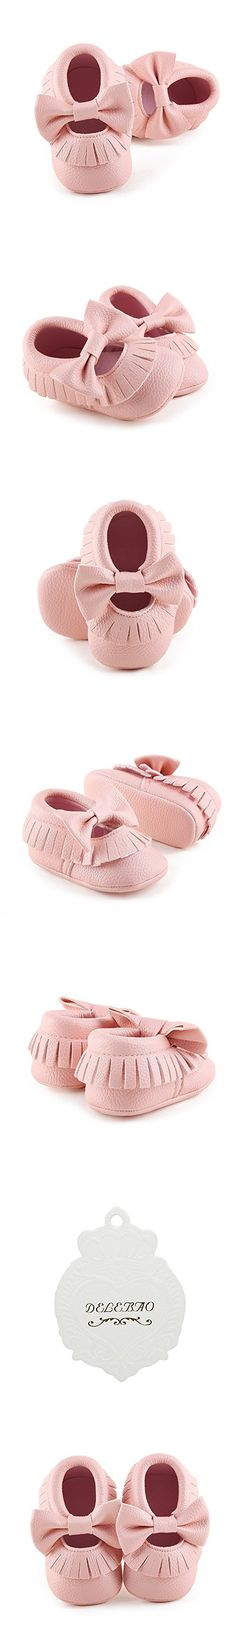 Delebao Infant Toddler Baby Soft Sole Tassel Bowknot Leather Moccasinss Crib Shoes (12-18 Months, Pink)